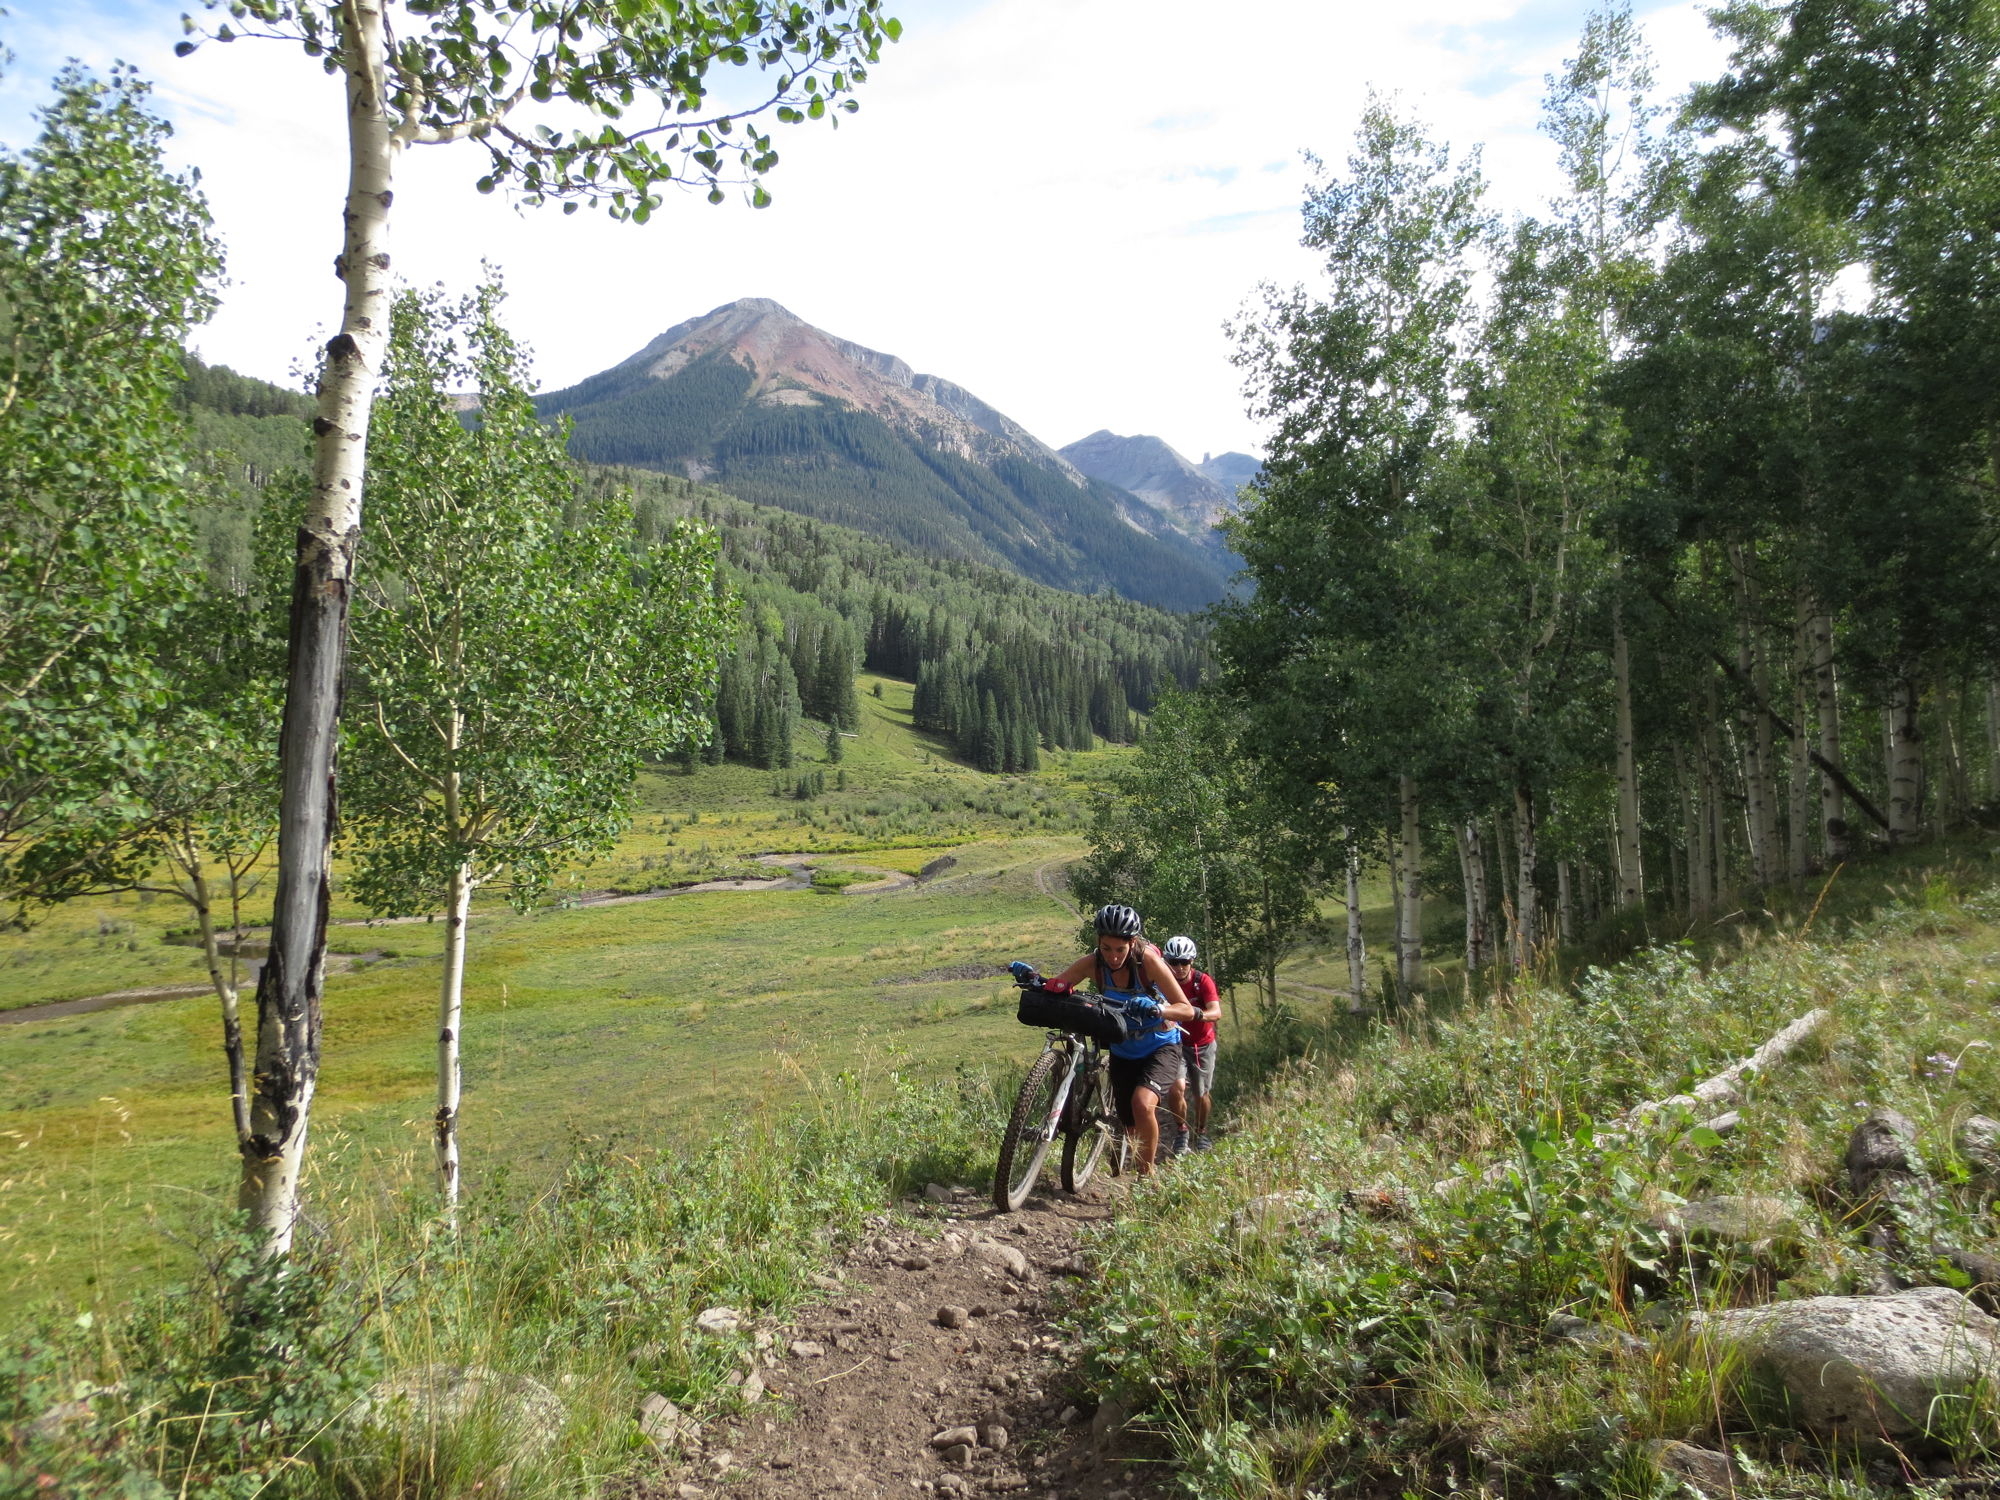 Alas, even heaven has its tribulations - namely, cow-destroyed singletrack. And land-use managers are worried about mountain bikes... what a joke.